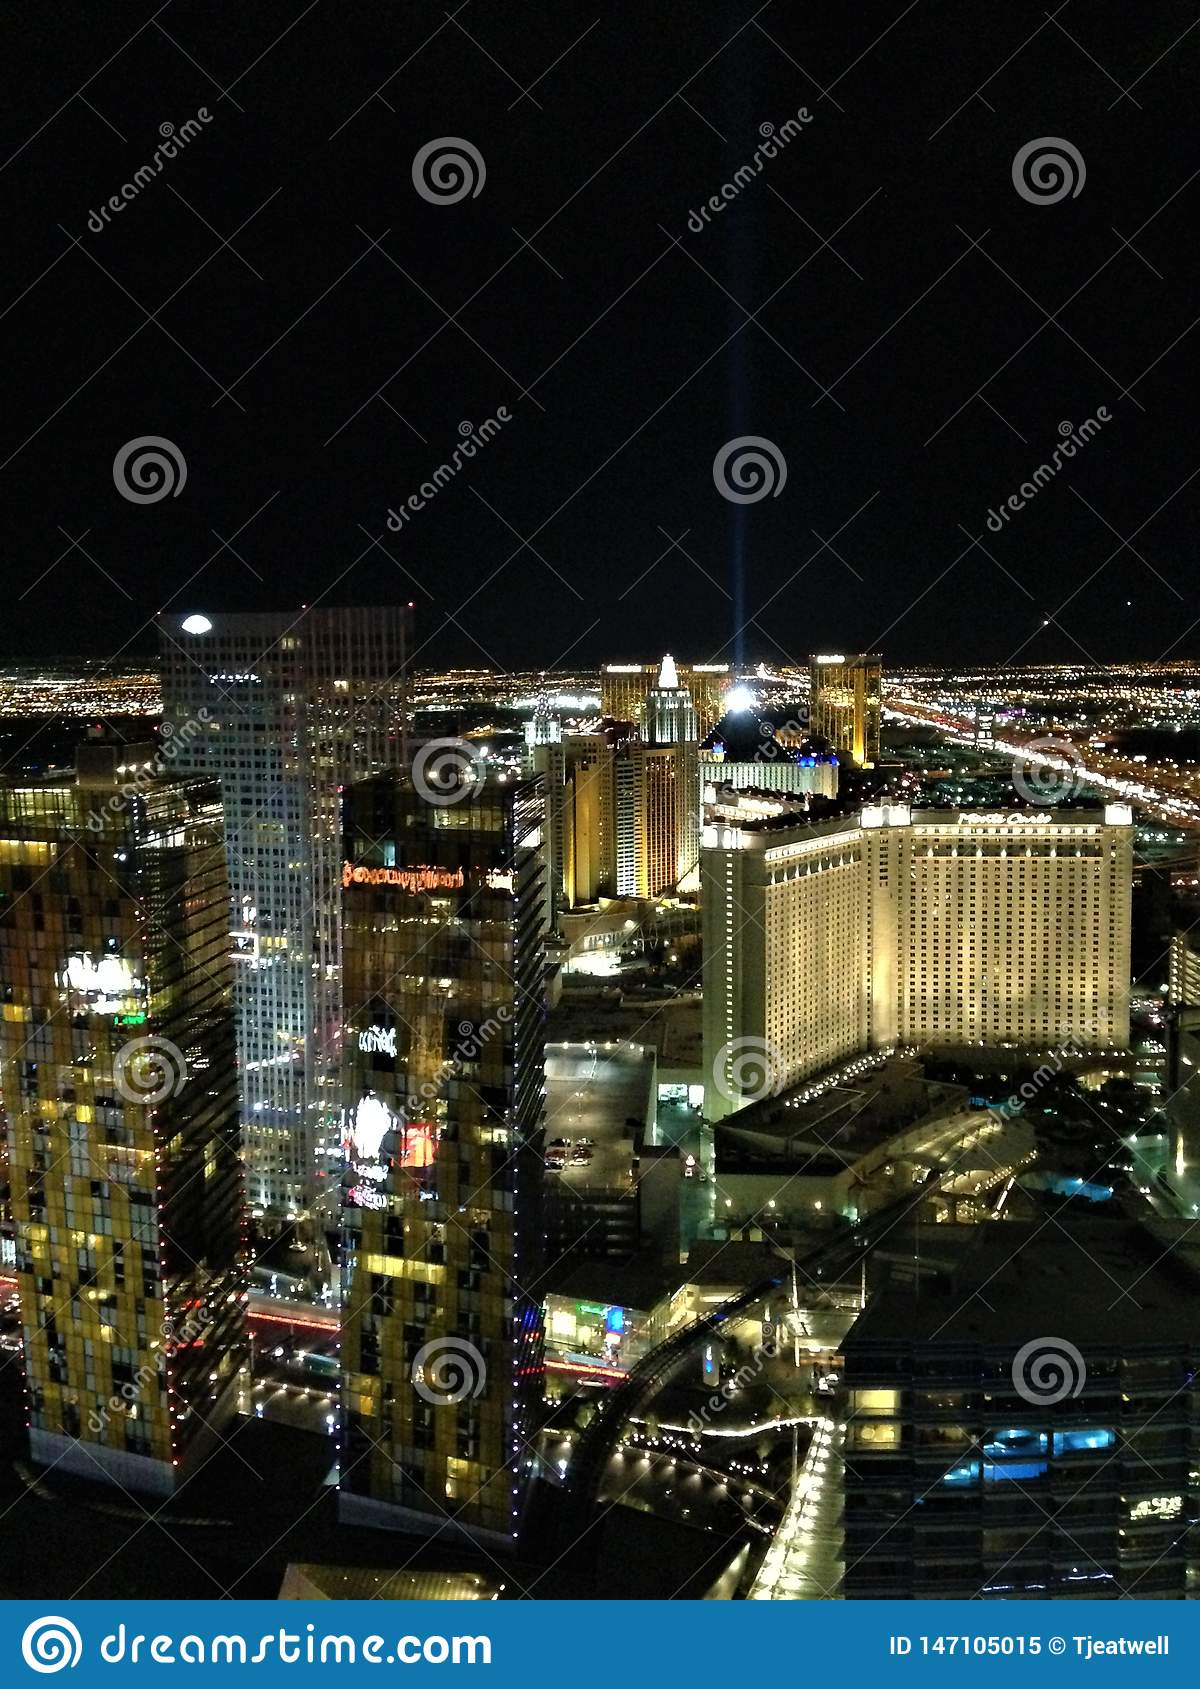 Las Vegas at night time